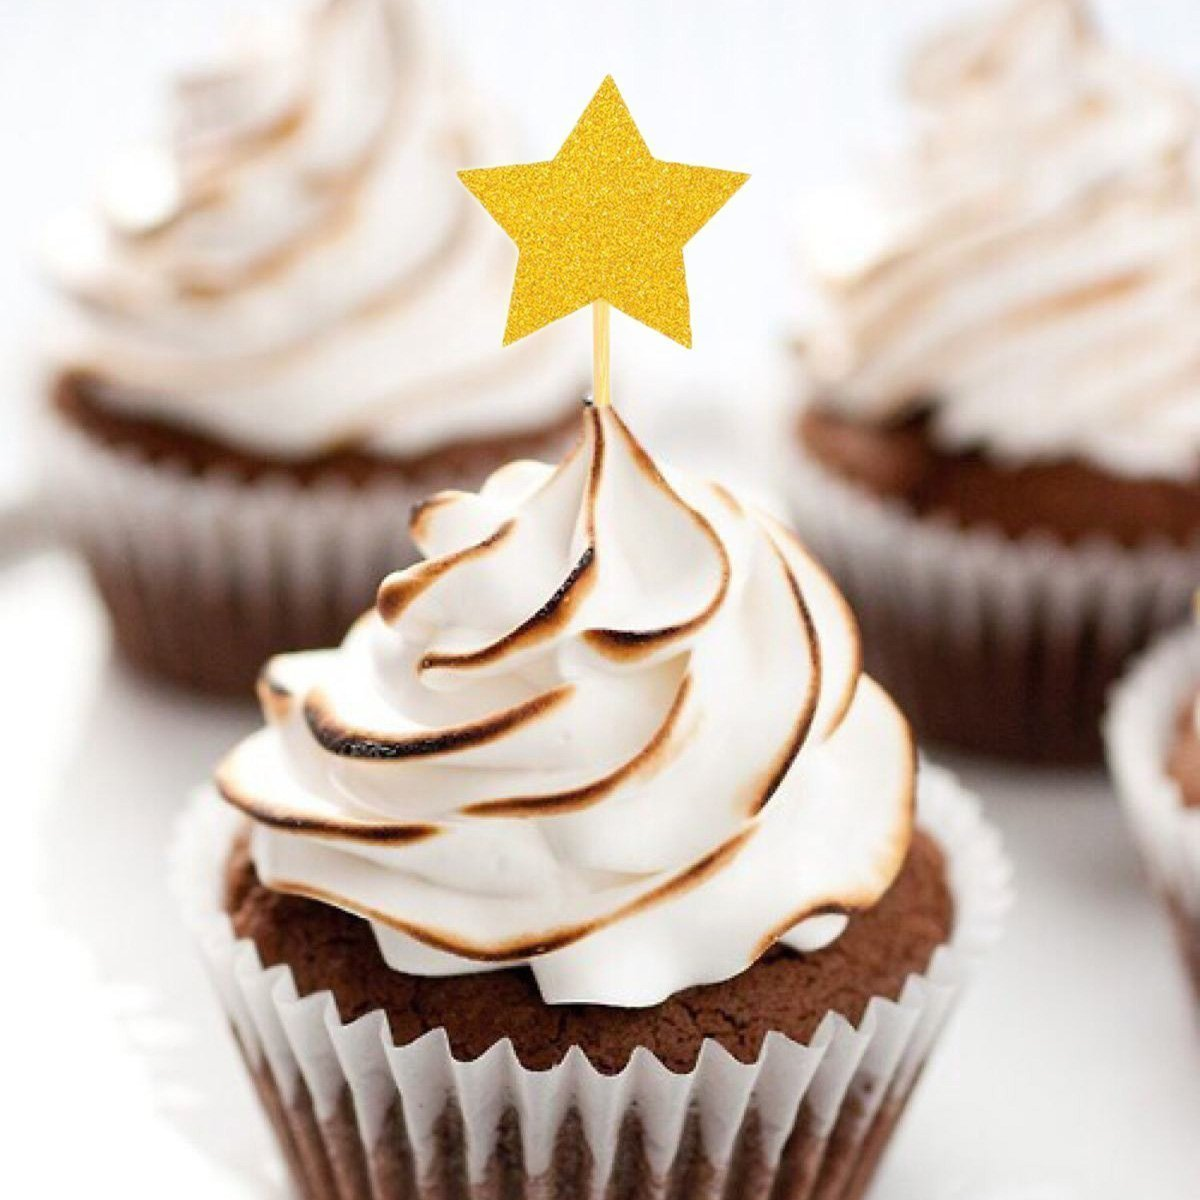 36 Pcs Twinkle Gold Star Cupcake Toppers DIY Glitter Mini Birthday Cake Snack Decorations Picks Suppliers Party Accessories for Wedding Baby Shower LLL